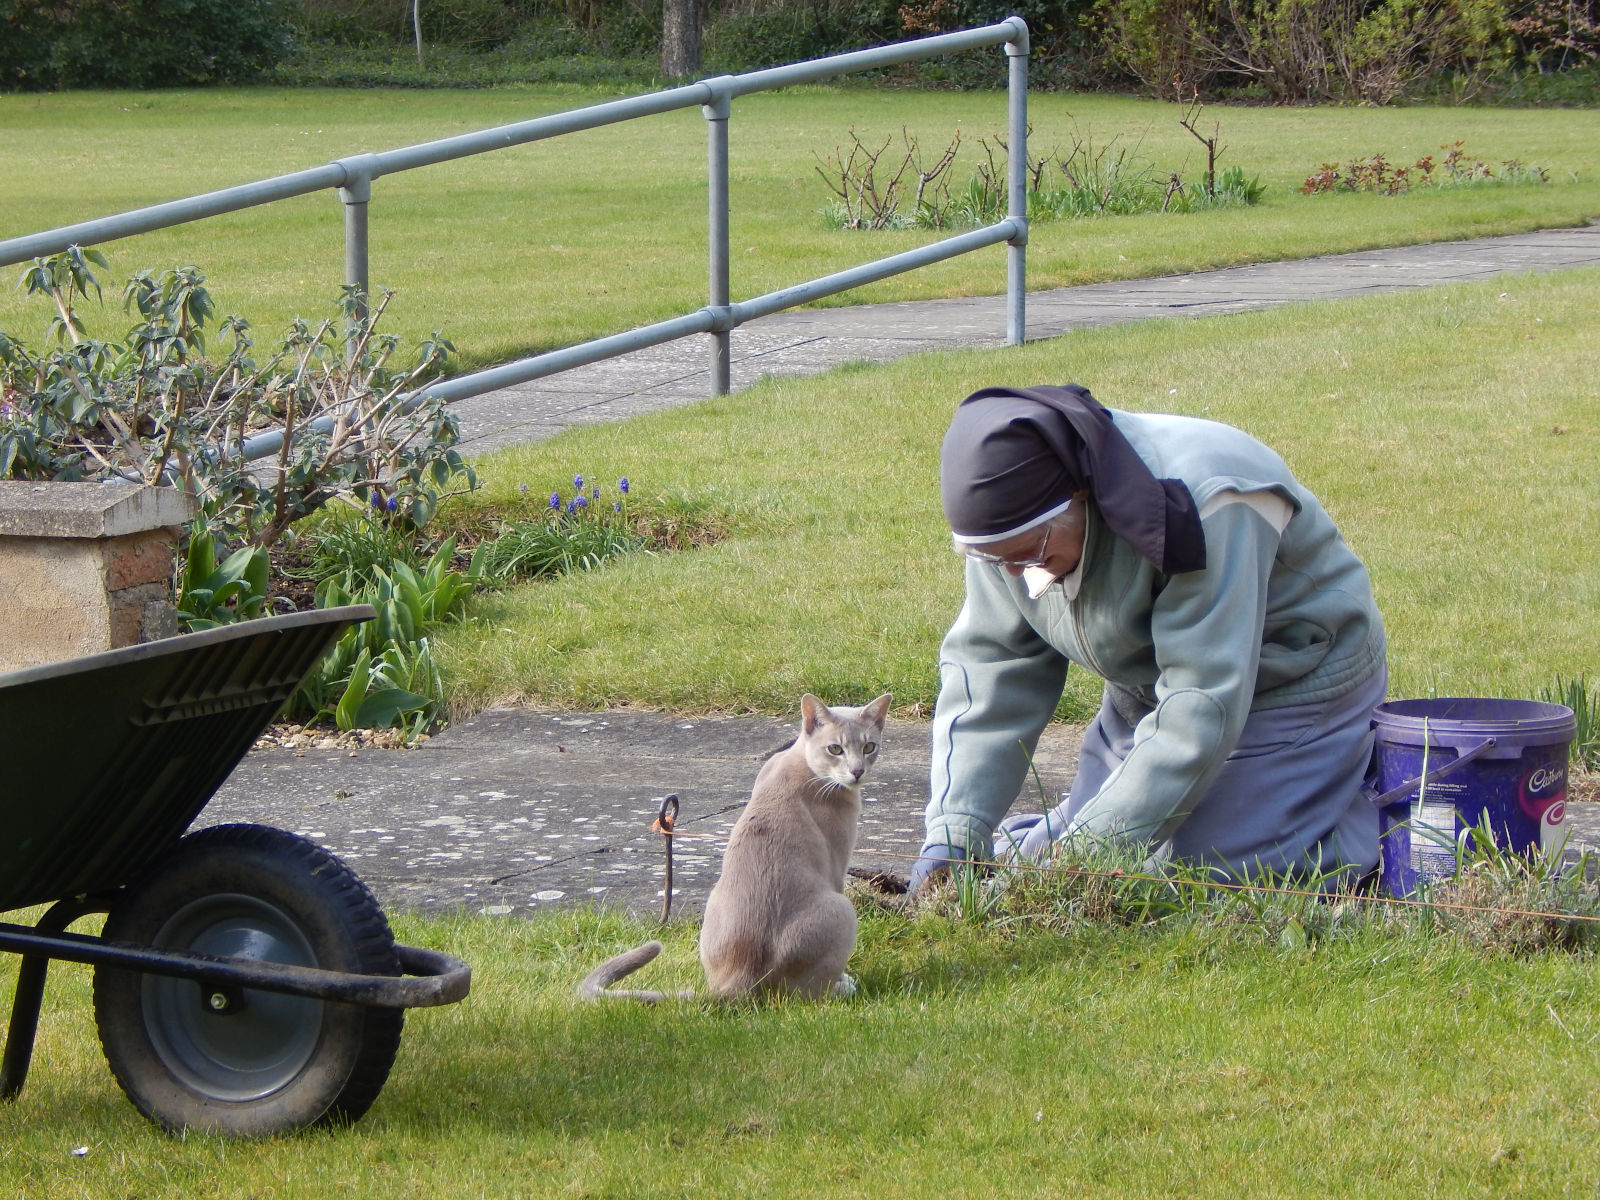 SLG Sr Susan in the garden with a cat